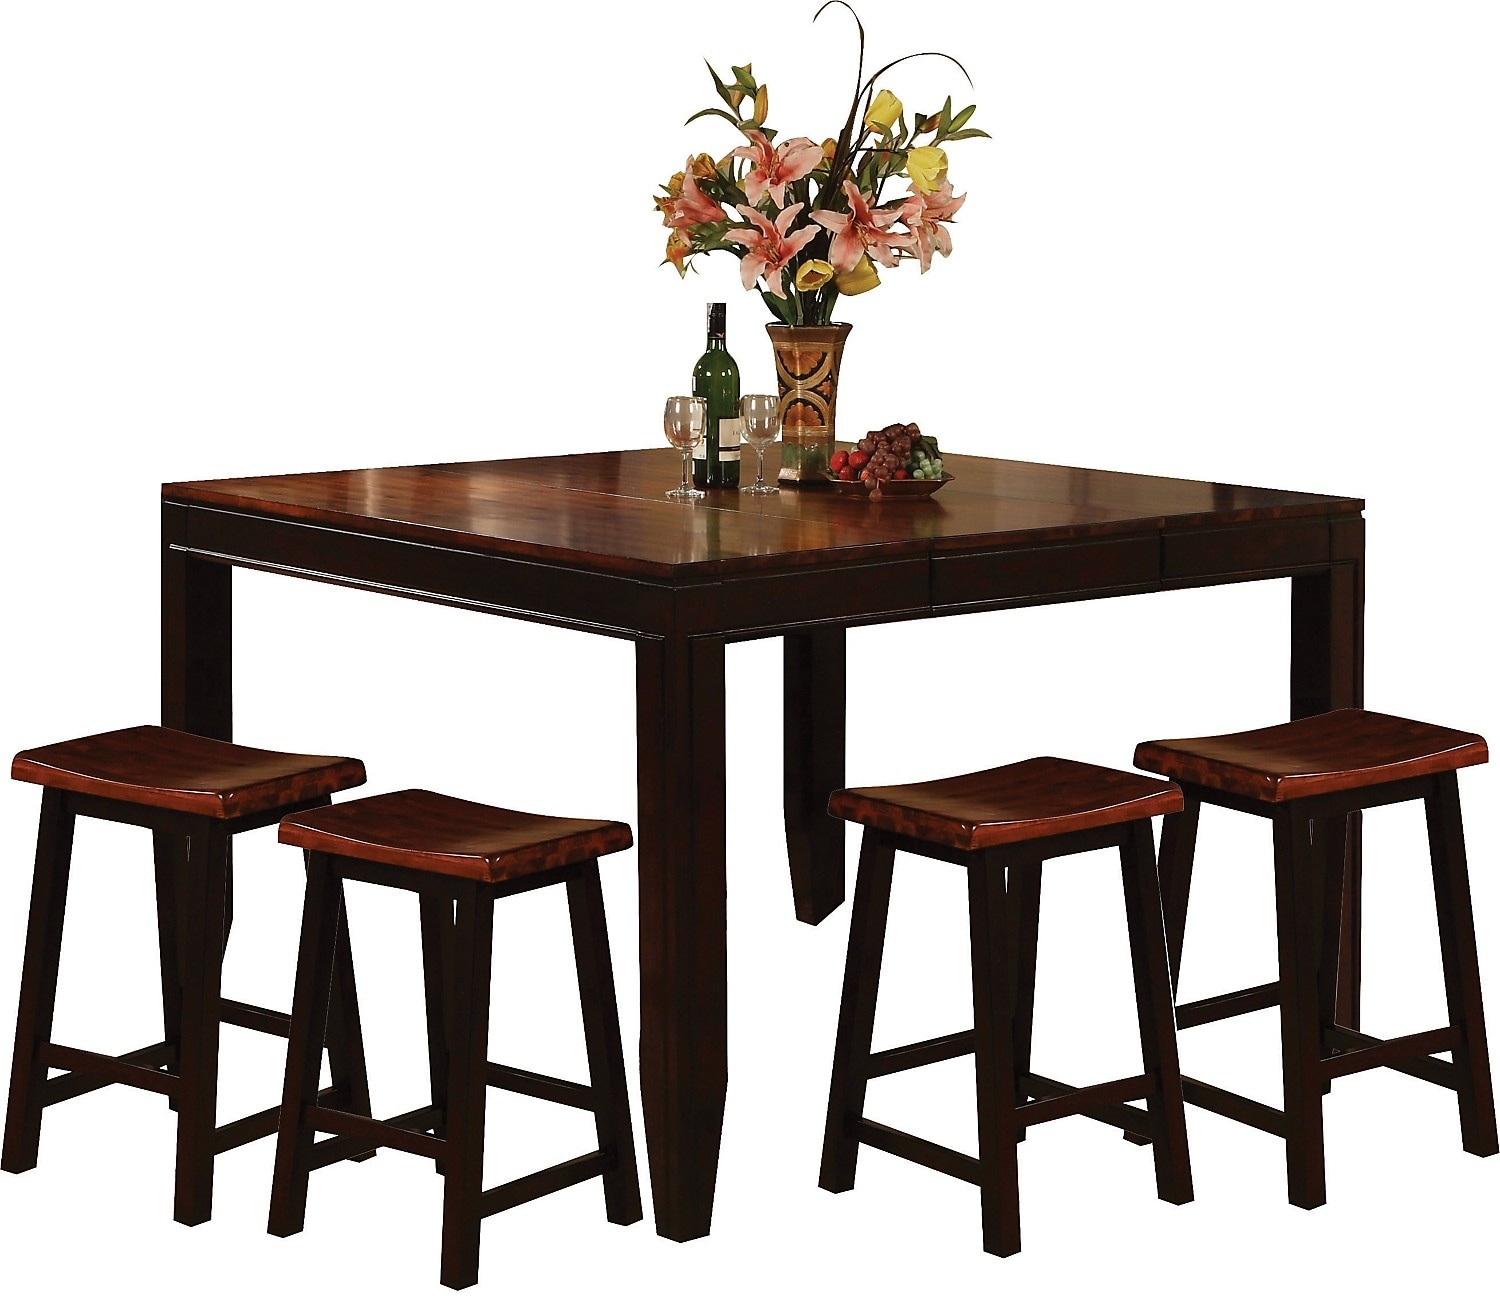 Dining Room Furniture - Zara 5-Piece Counter-Height Dining Package with Barstools